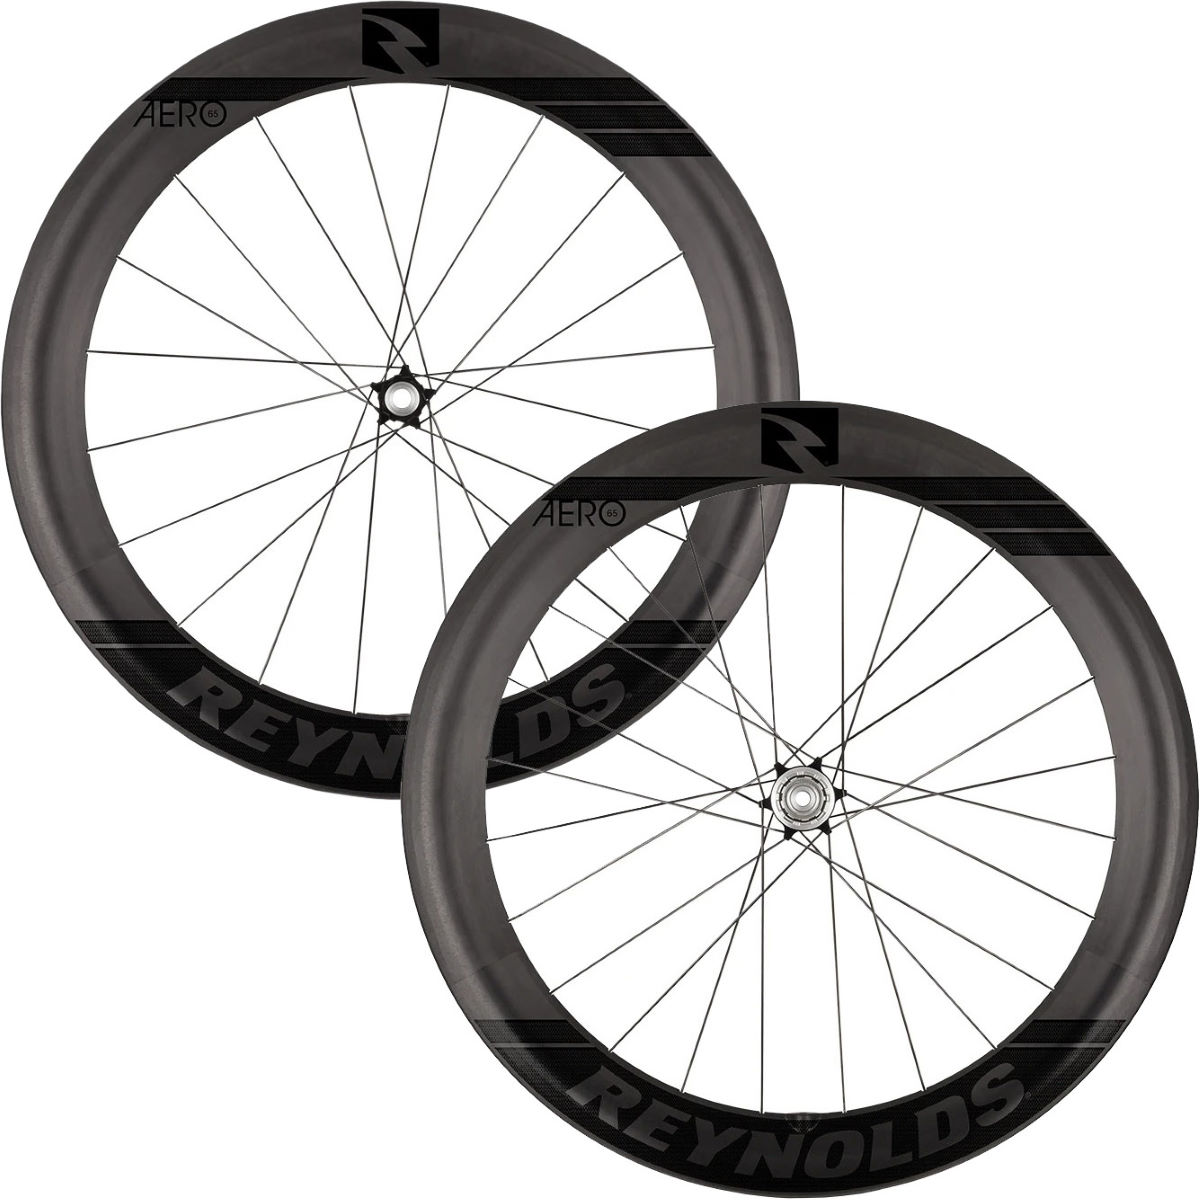 Reynolds Reynolds Aero 65 Black Label Carbon Disc Road Wheelset   Wheel Sets